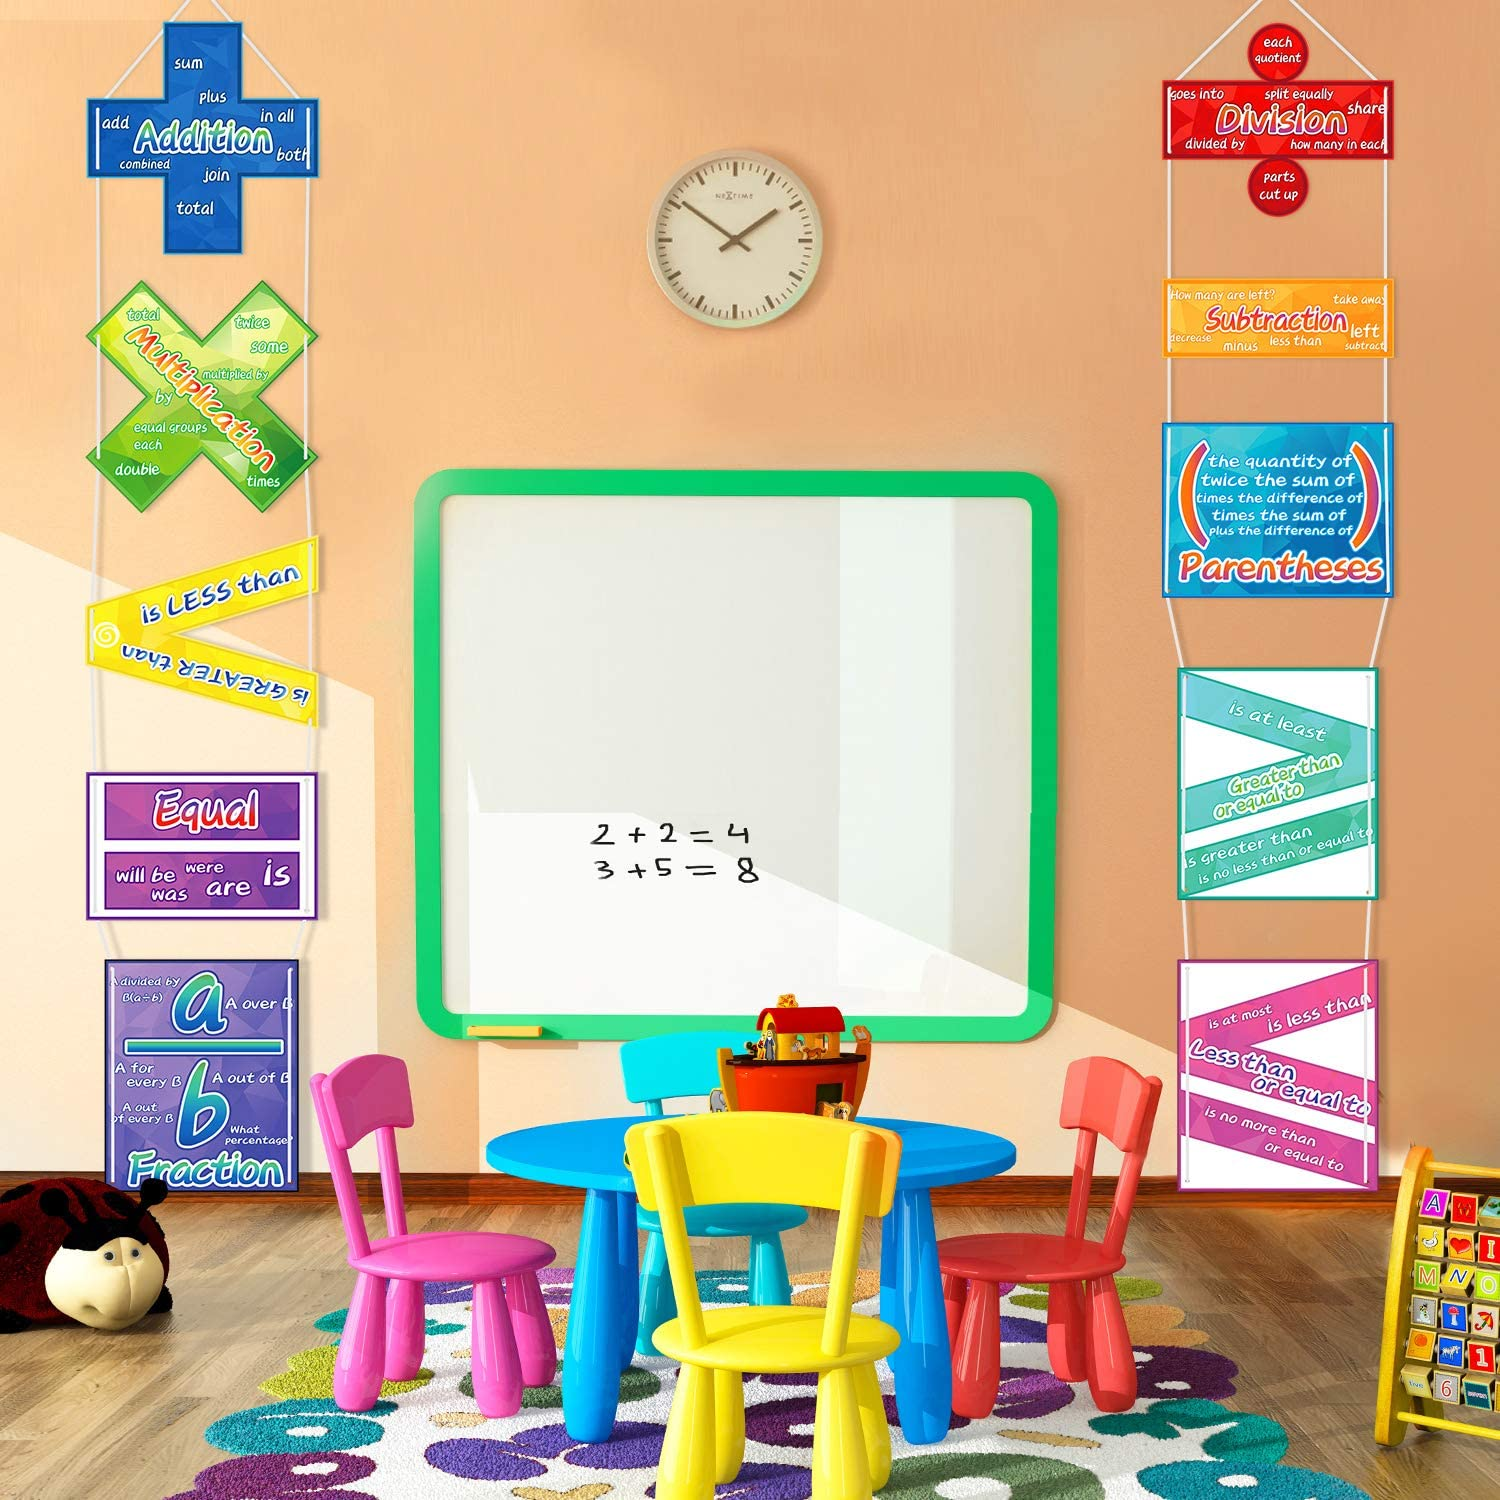 10 Pieces Math Poster Educational Learning Poster for Classroom Preschool Primary School Students Kids